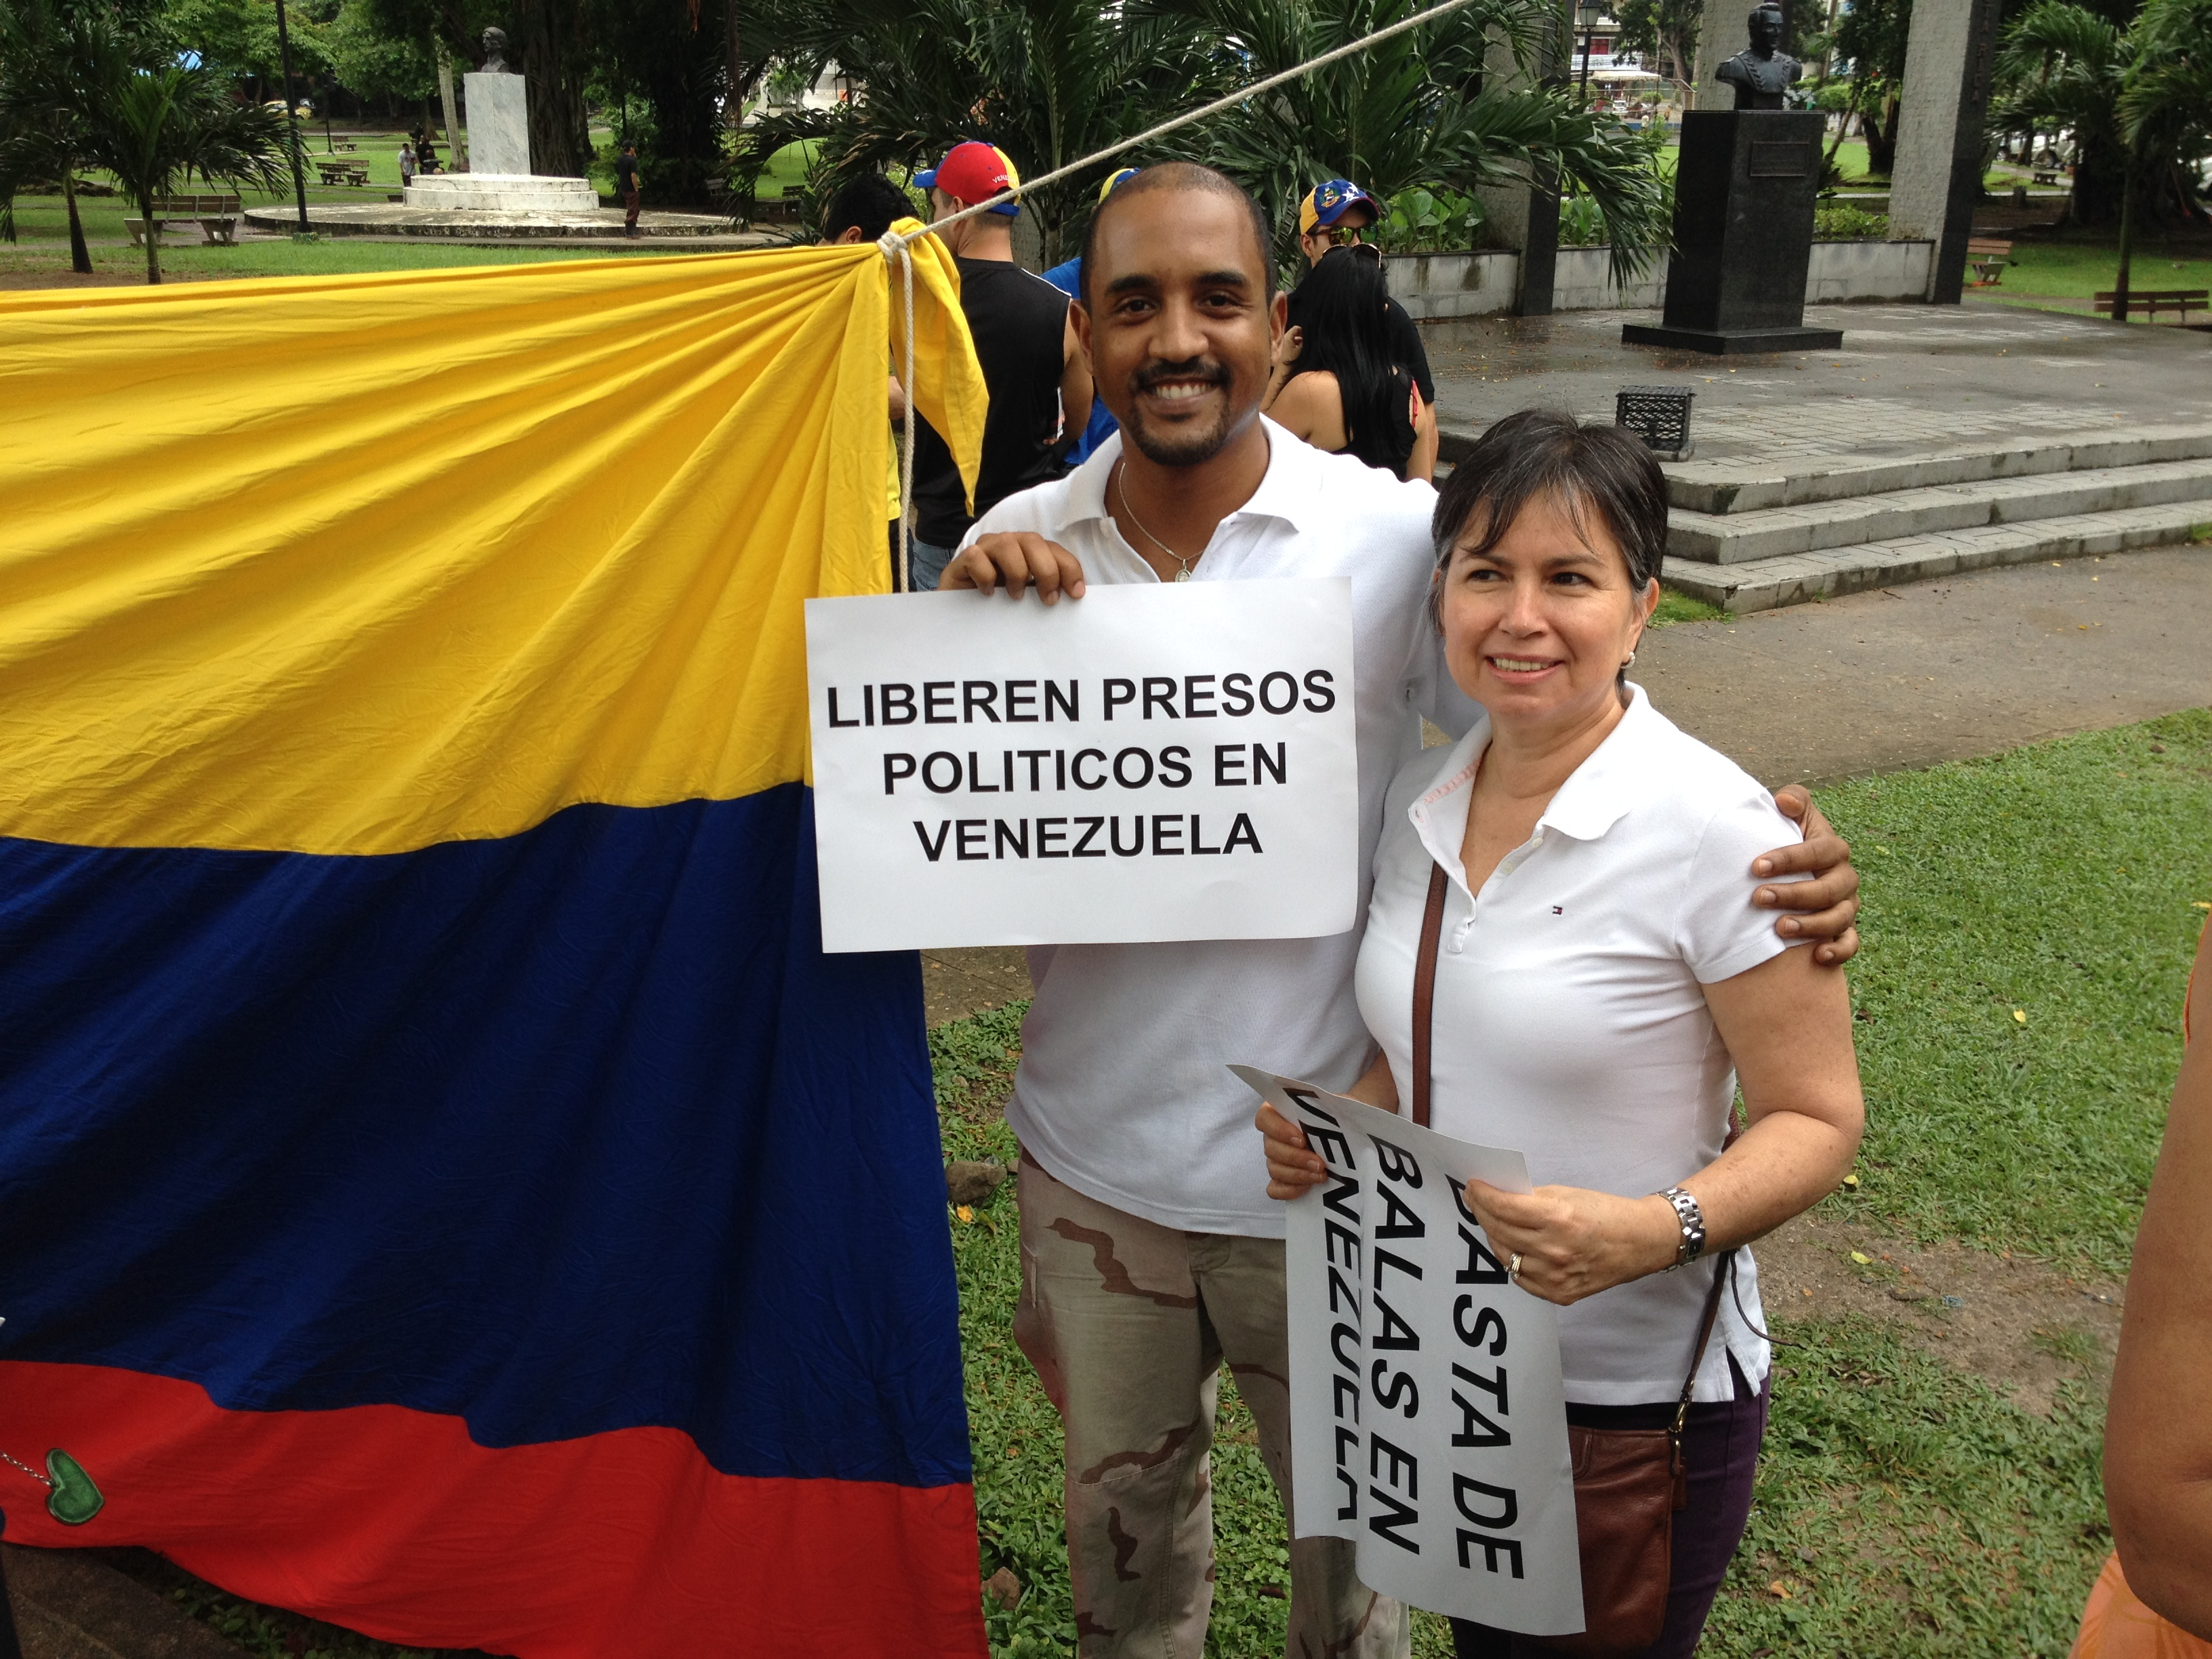 Panamanian Rey Feurtado participated in the demonstation against Maduro's repression in Venezuela